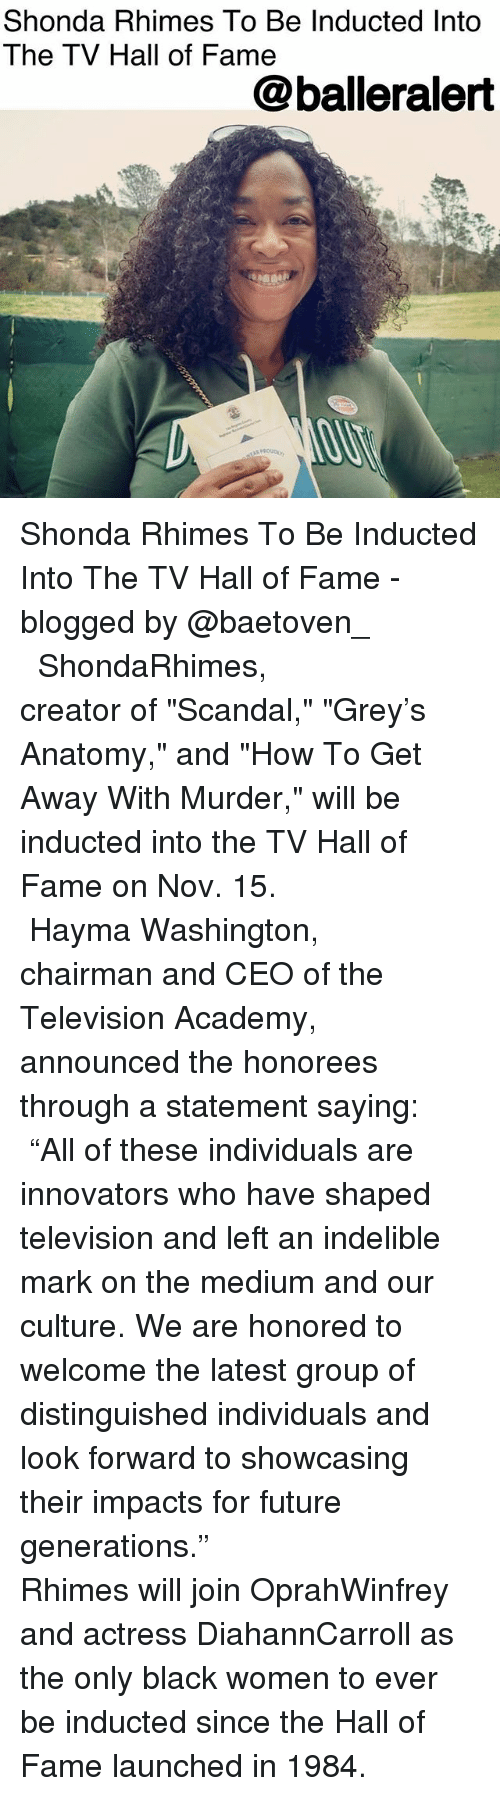 """Future, Memes, and Academy: Shonda Rhimes To Be Inducted Into  The TV Hall of Fame  @balleralert Shonda Rhimes To Be Inducted Into The TV Hall of Fame - blogged by @baetoven_ ⠀⠀⠀⠀⠀⠀⠀ ⠀⠀⠀⠀⠀⠀⠀ ⠀⠀⠀⠀⠀⠀⠀ ShondaRhimes, creator of """"Scandal,"""" """"Grey's Anatomy,"""" and """"How To Get Away With Murder,"""" will be inducted into the TV Hall of Fame on Nov. 15. ⠀⠀⠀⠀⠀⠀⠀ ⠀⠀⠀⠀⠀⠀⠀ ⠀⠀⠀⠀⠀⠀⠀ Hayma Washington, chairman and CEO of the Television Academy, announced the honorees through a statement saying: ⠀⠀⠀⠀⠀⠀⠀ """"All of these individuals are innovators who have shaped television and left an indelible mark on the medium and our culture. We are honored to welcome the latest group of distinguished individuals and look forward to showcasing their impacts for future generations."""" ⠀⠀⠀⠀⠀⠀⠀ ⠀⠀⠀⠀⠀⠀⠀ ⠀⠀⠀⠀⠀⠀⠀ Rhimes will join OprahWinfrey and actress DiahannCarroll as the only black women to ever be inducted since the Hall of Fame launched in 1984."""